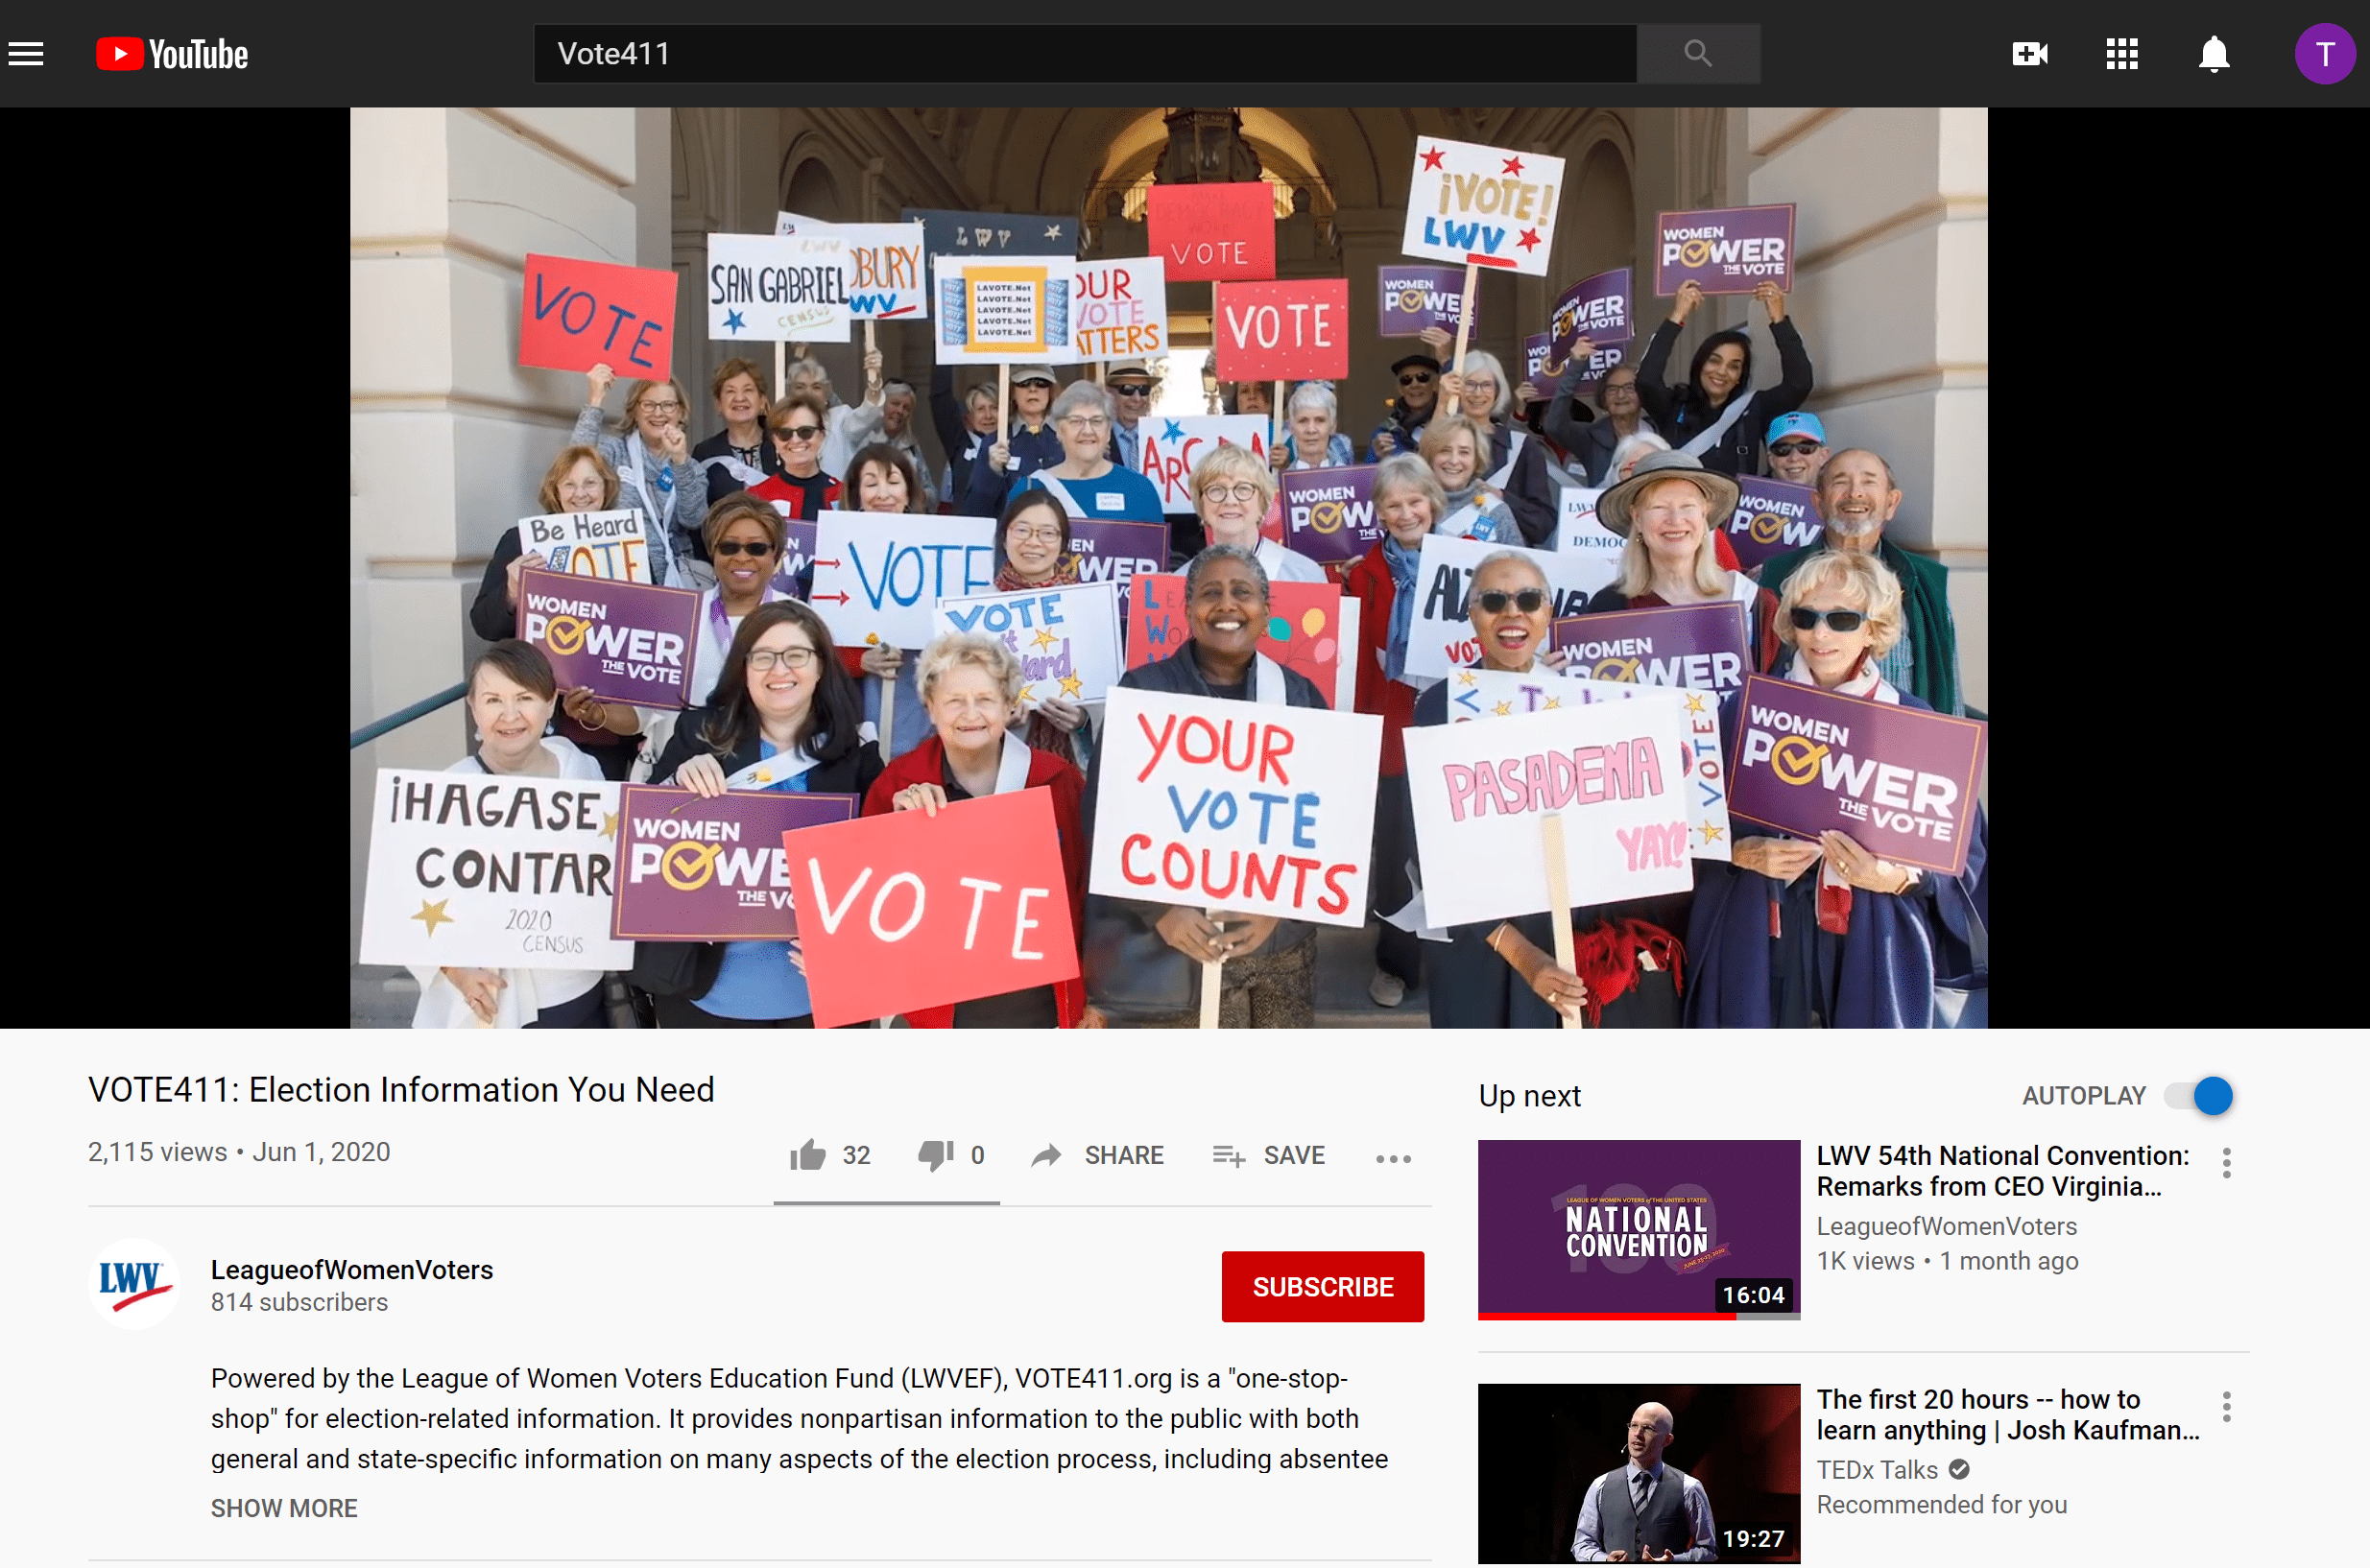 League of Women Voters of the United States & Vanguard Communications